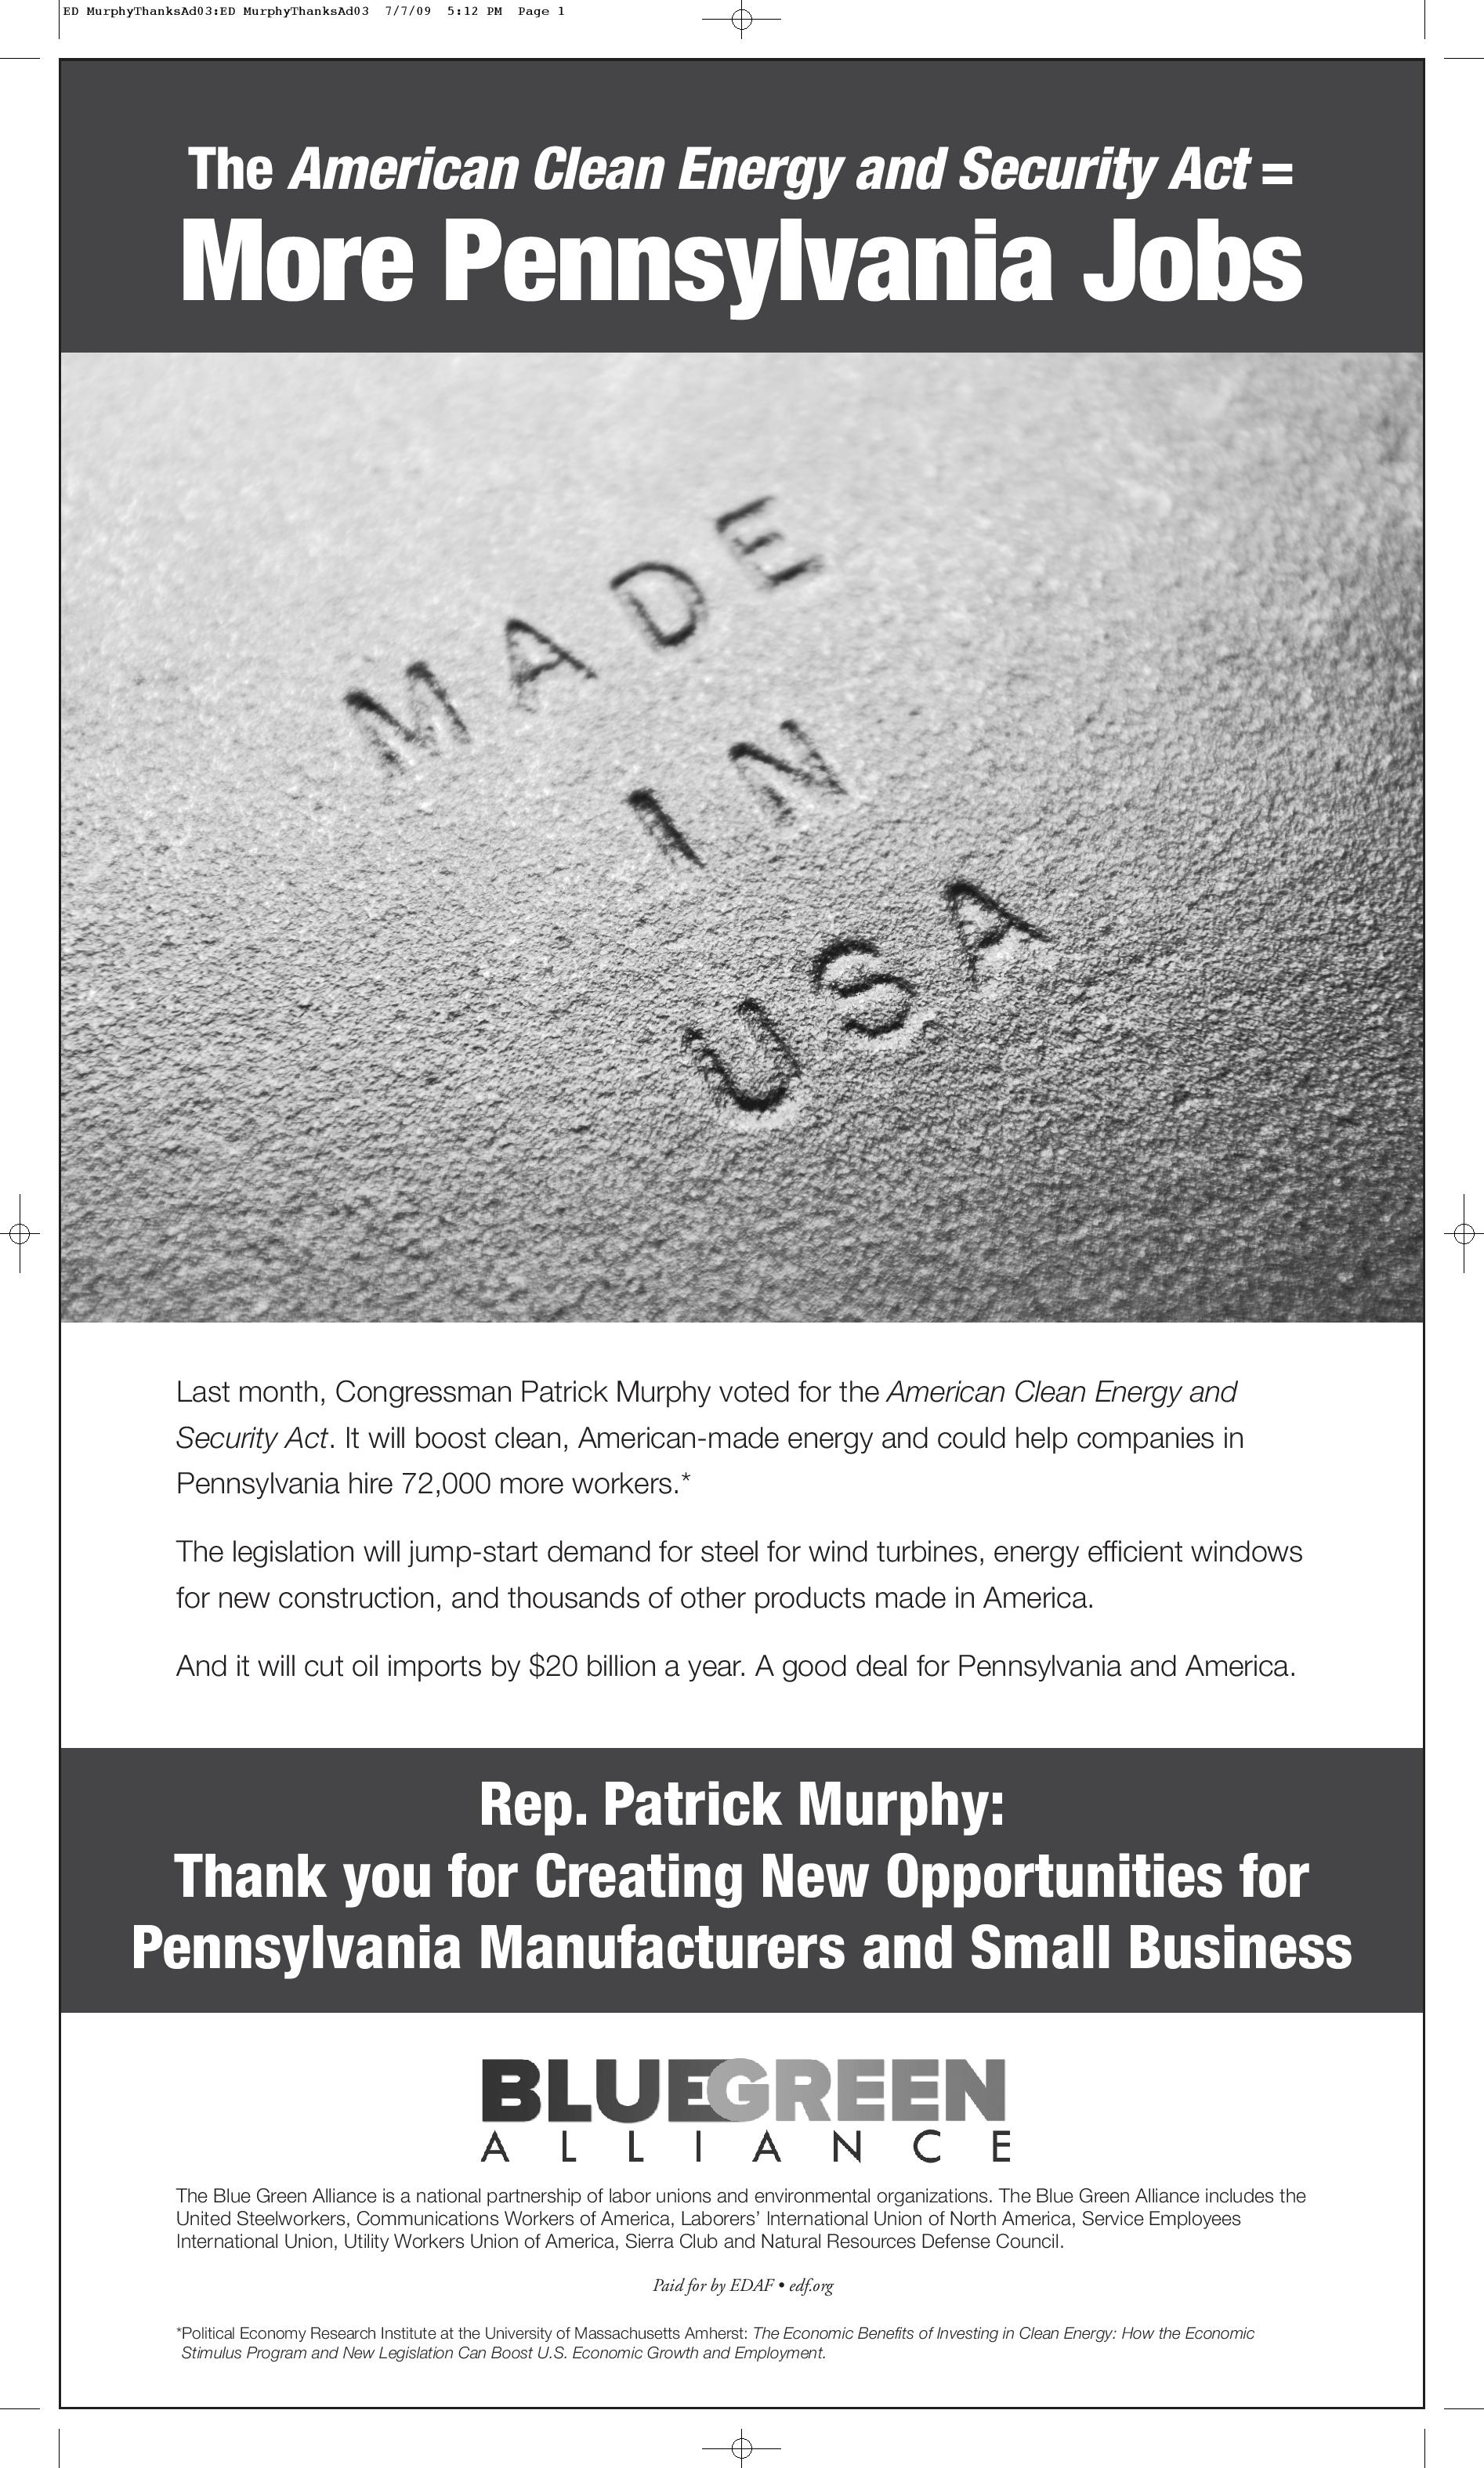 Thank You for Supporting the American Clean Energy and Security Act: Rep. Patrick Murphy